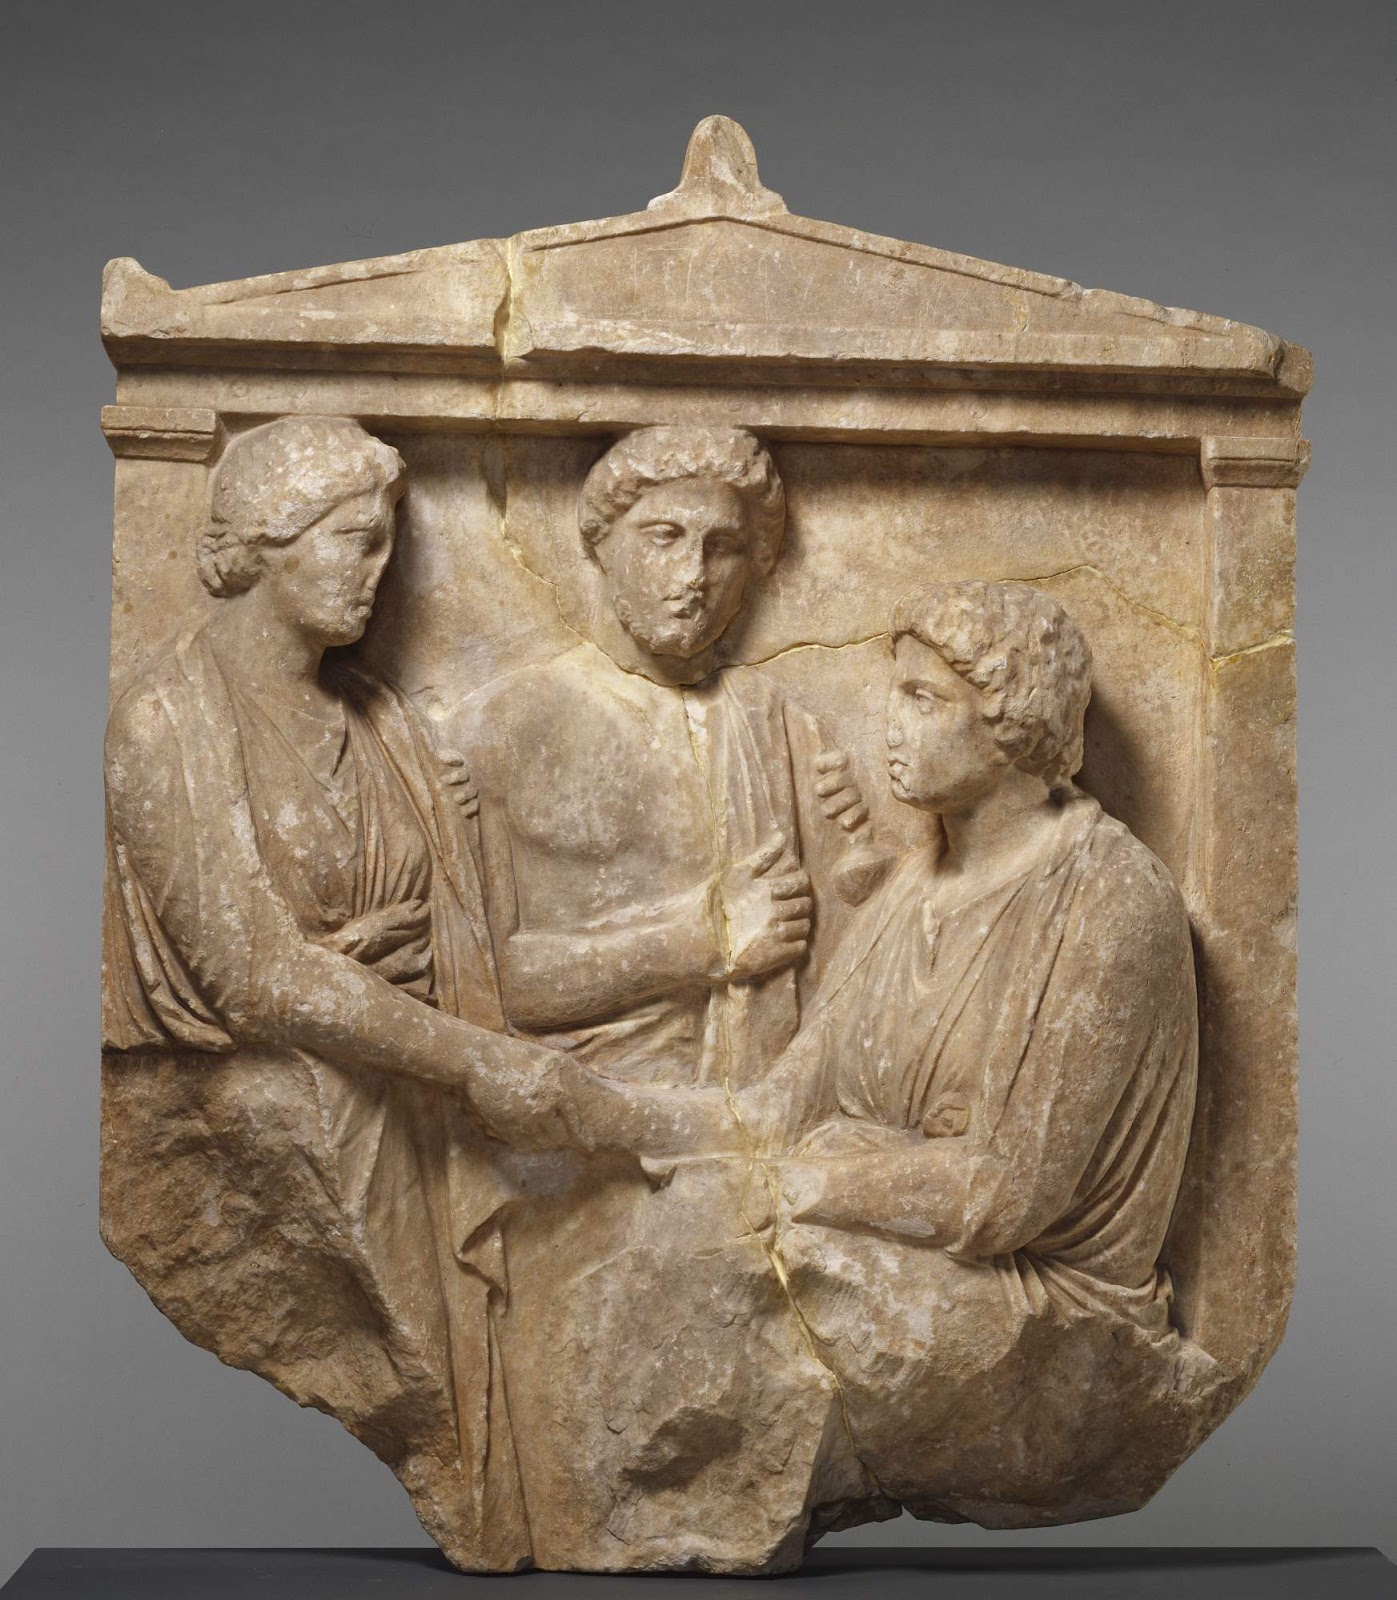 an examination of greek grave steles During the classical period, the greeks became the first ancient culture to  represent children  provides a thorough examination of the 106 roman  funerary attic reliefs  80 is a stele with solely the feet of the central figure.